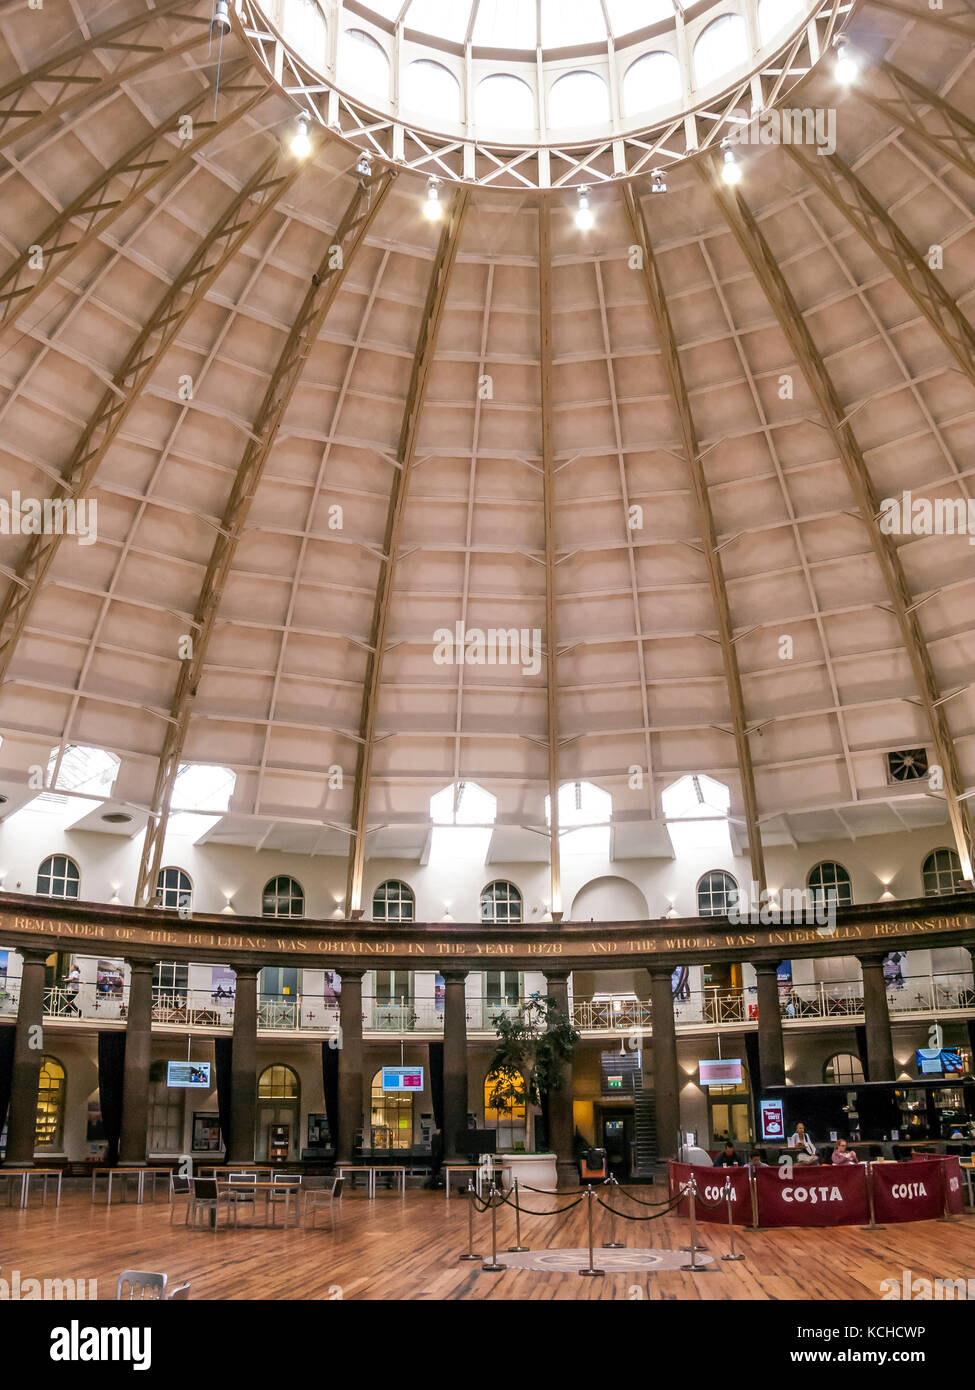 The Devonshire Dome, more than 150 feet in diameter, Buxton, Derbyshire - Stock Image